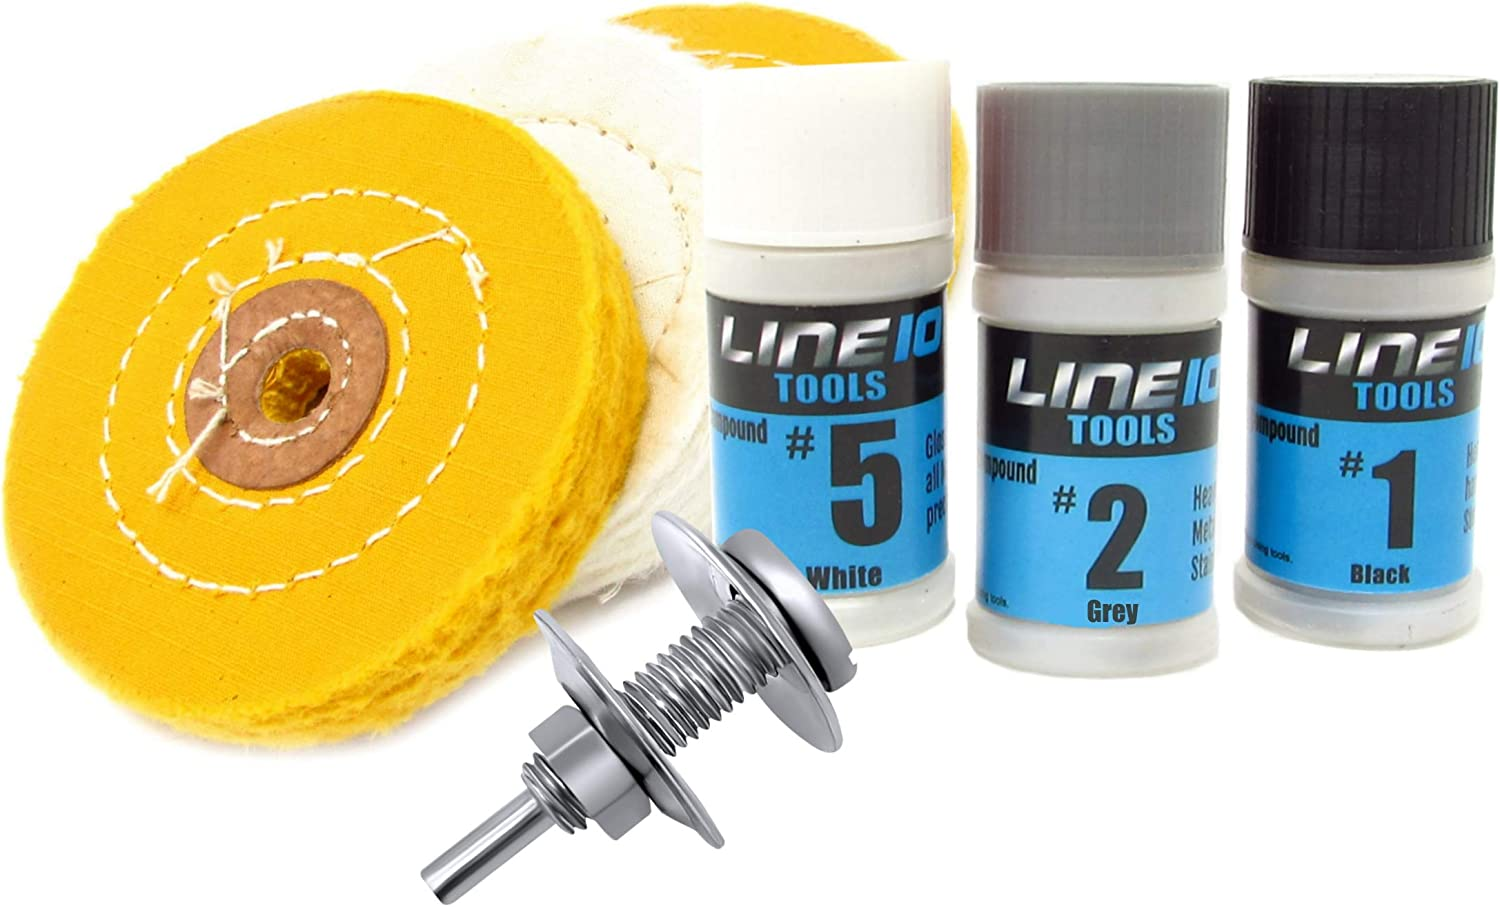 150 Carded Polishing Compound Kit to Apply on buffing wheels for polishing metal